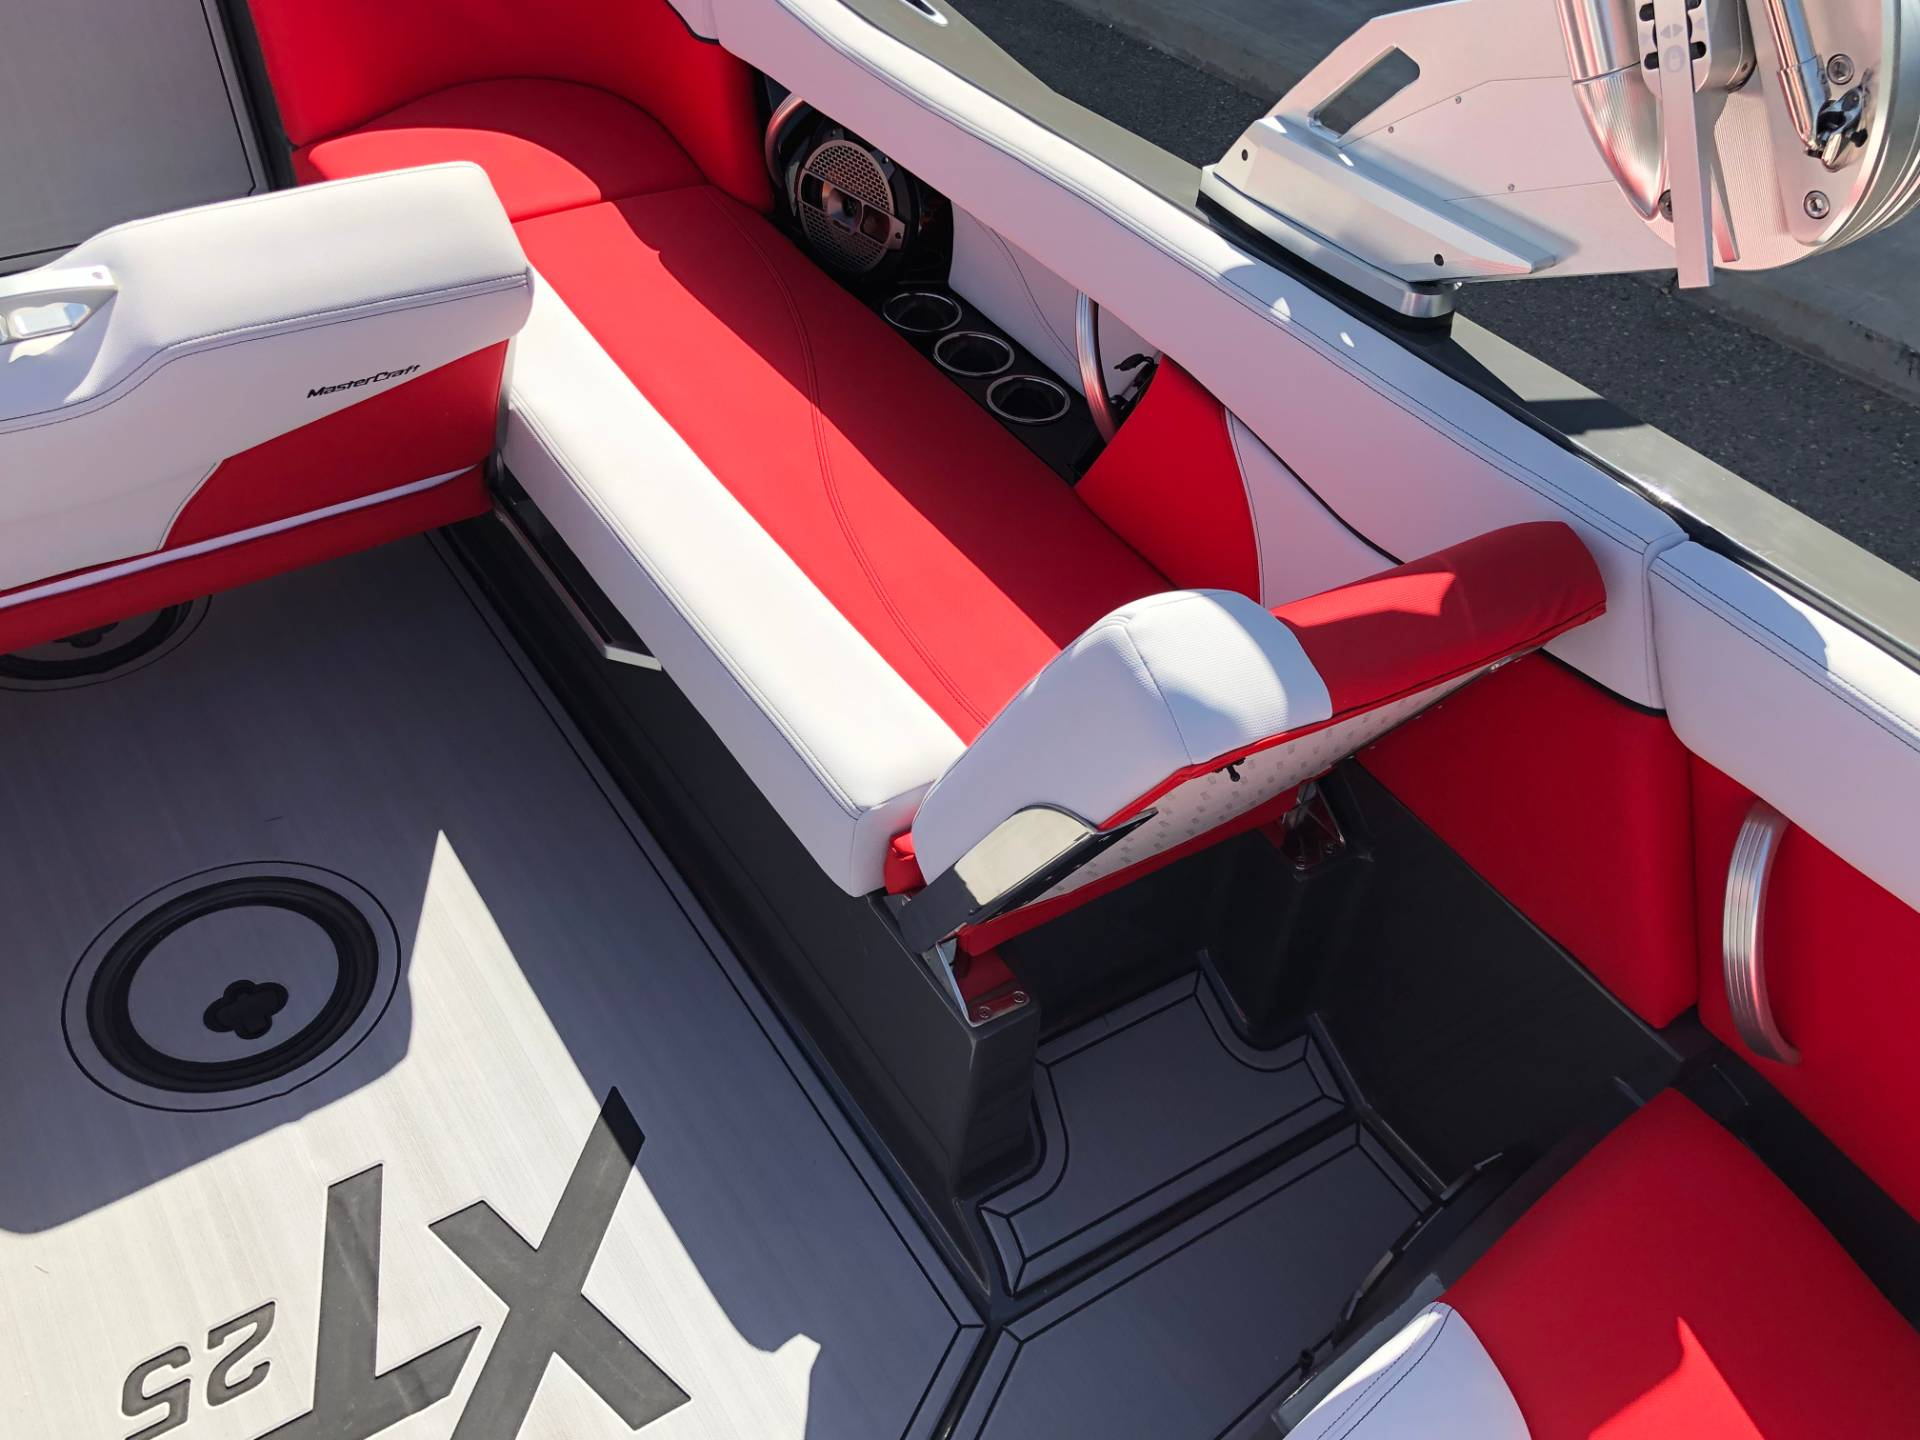 2020 Mastercraft XT25 in Madera, California - Photo 11